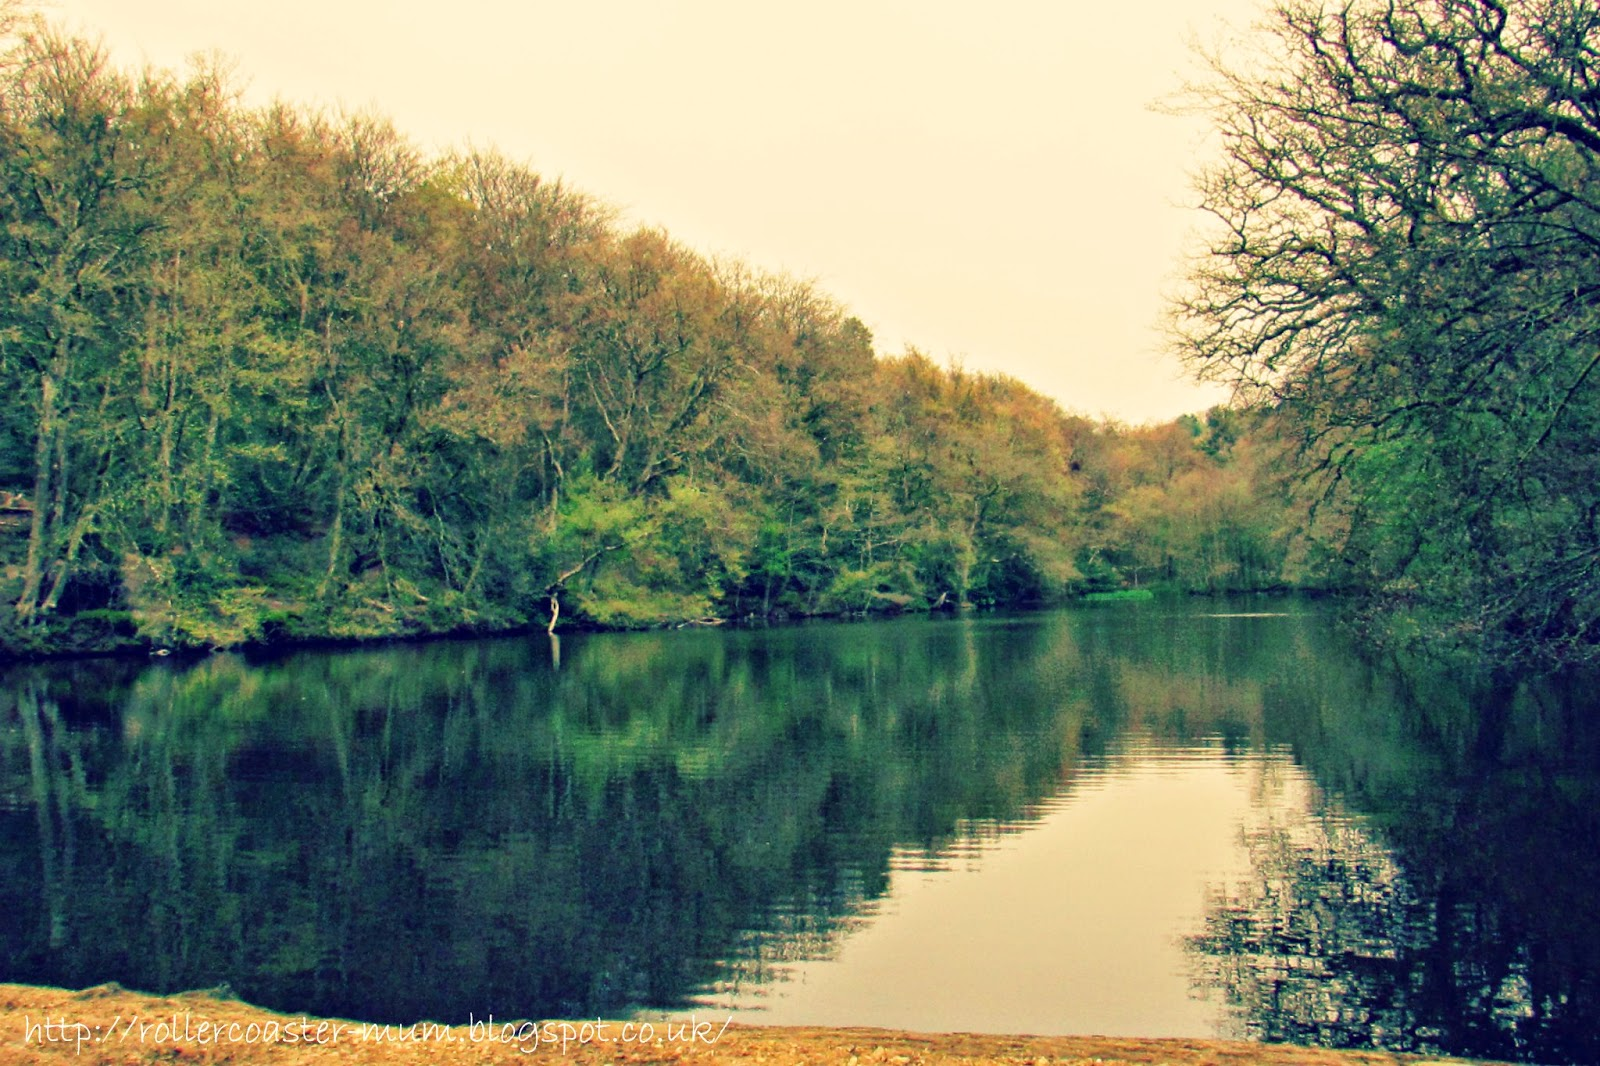 The beautiful and mysterious middle lake at National Trust Waggoners Wells